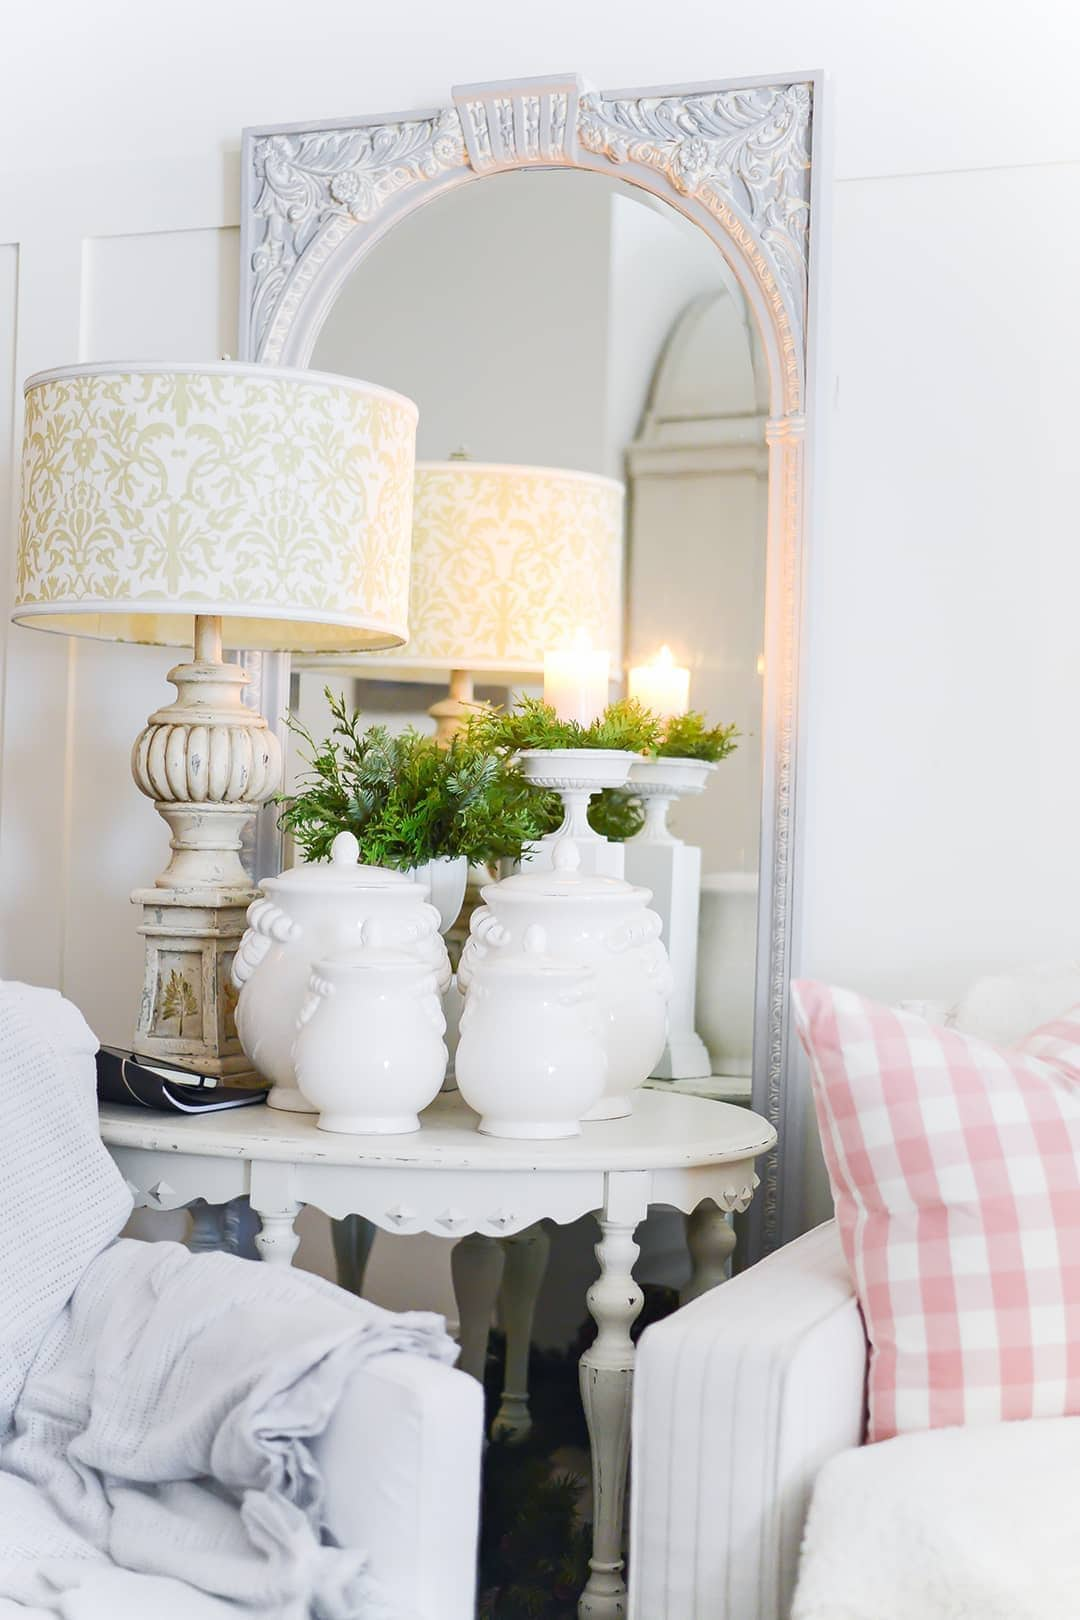 White wood painted side table with a collection of white porcelain urns, concrete lamp with a pretty damask shade accented by a white wood mirror, candles and greenery.